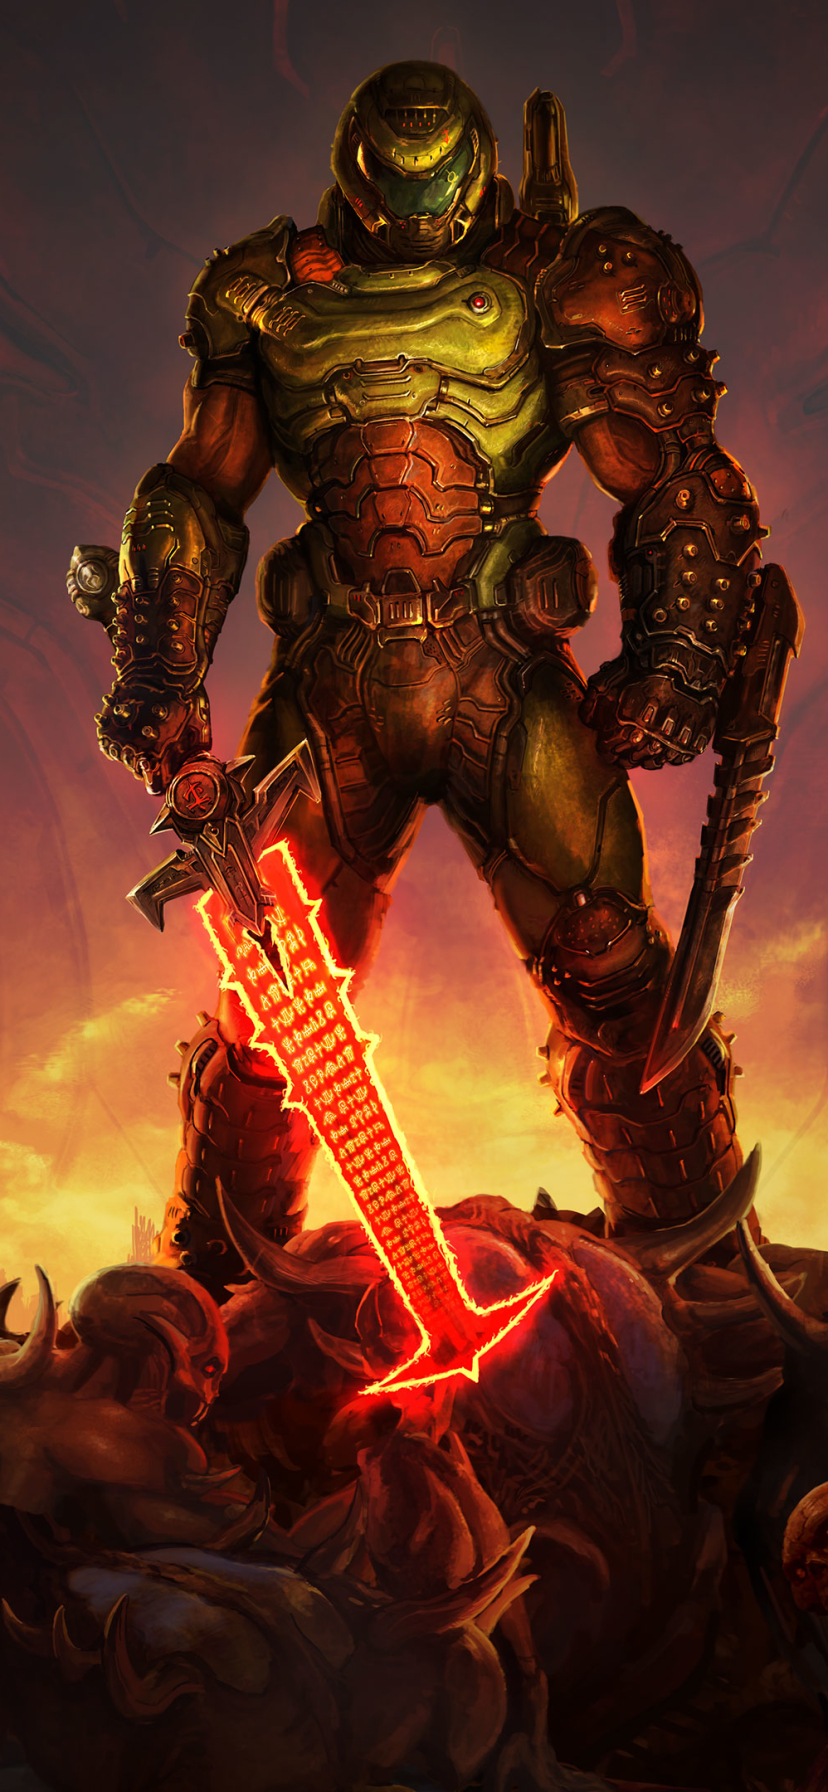 DOOM Eternal mobile wallpaper